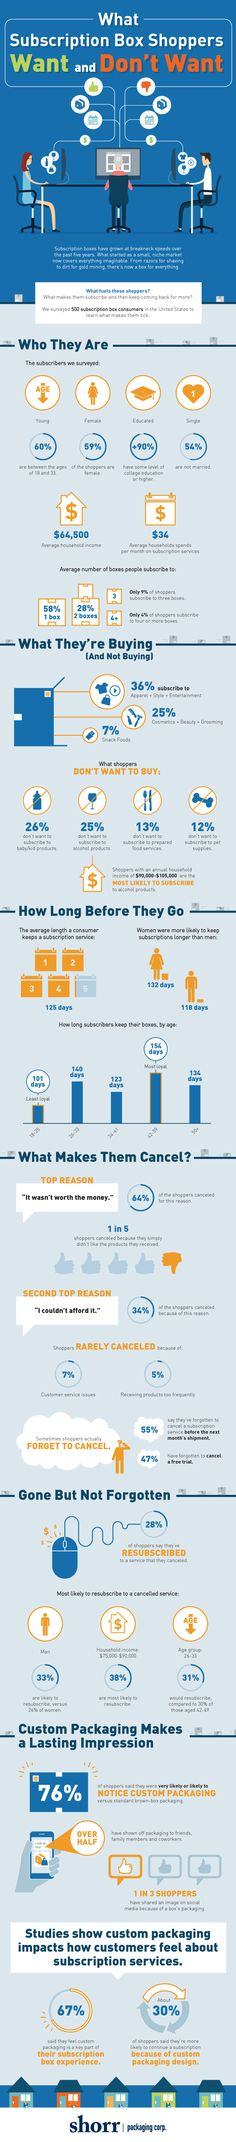 The Likes & Dislikes of Subscription Box Shoppers #Infographic #Business